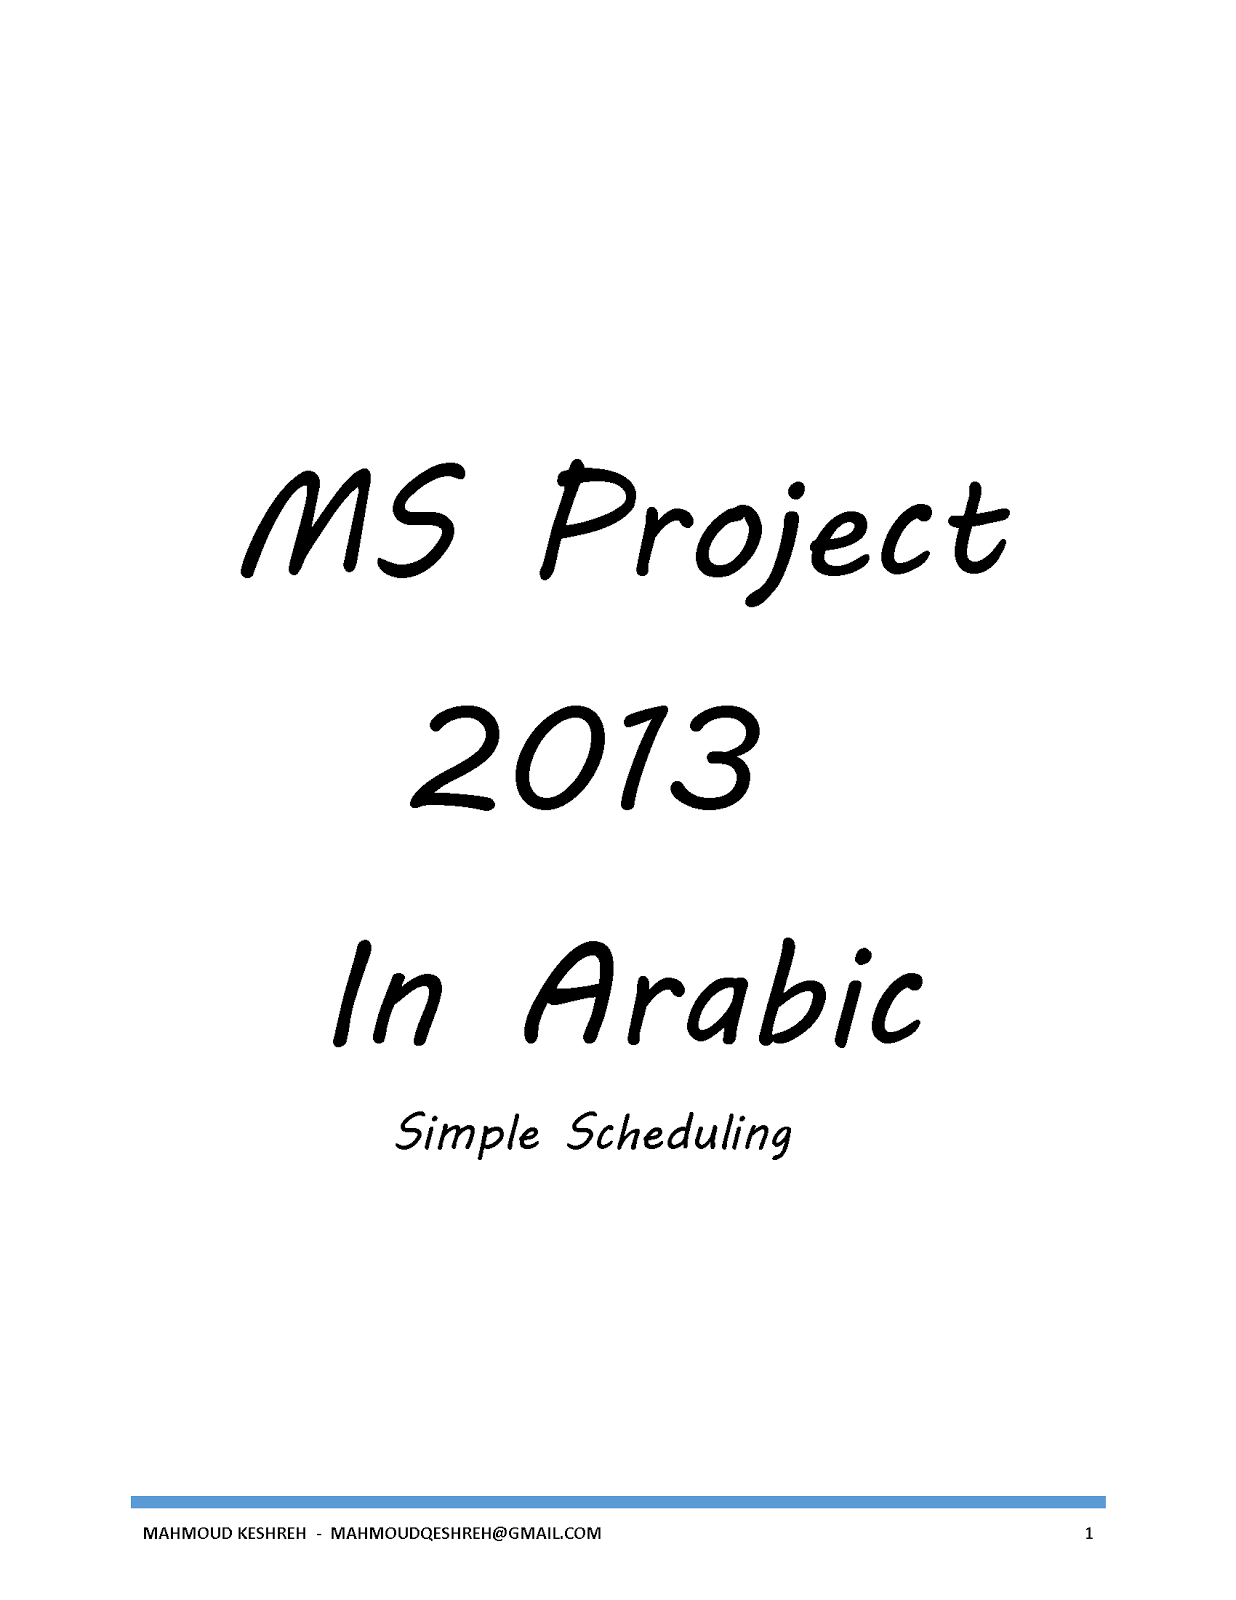 MS Project 2013 In Arabic - ENGINEERING MANAGEMENT